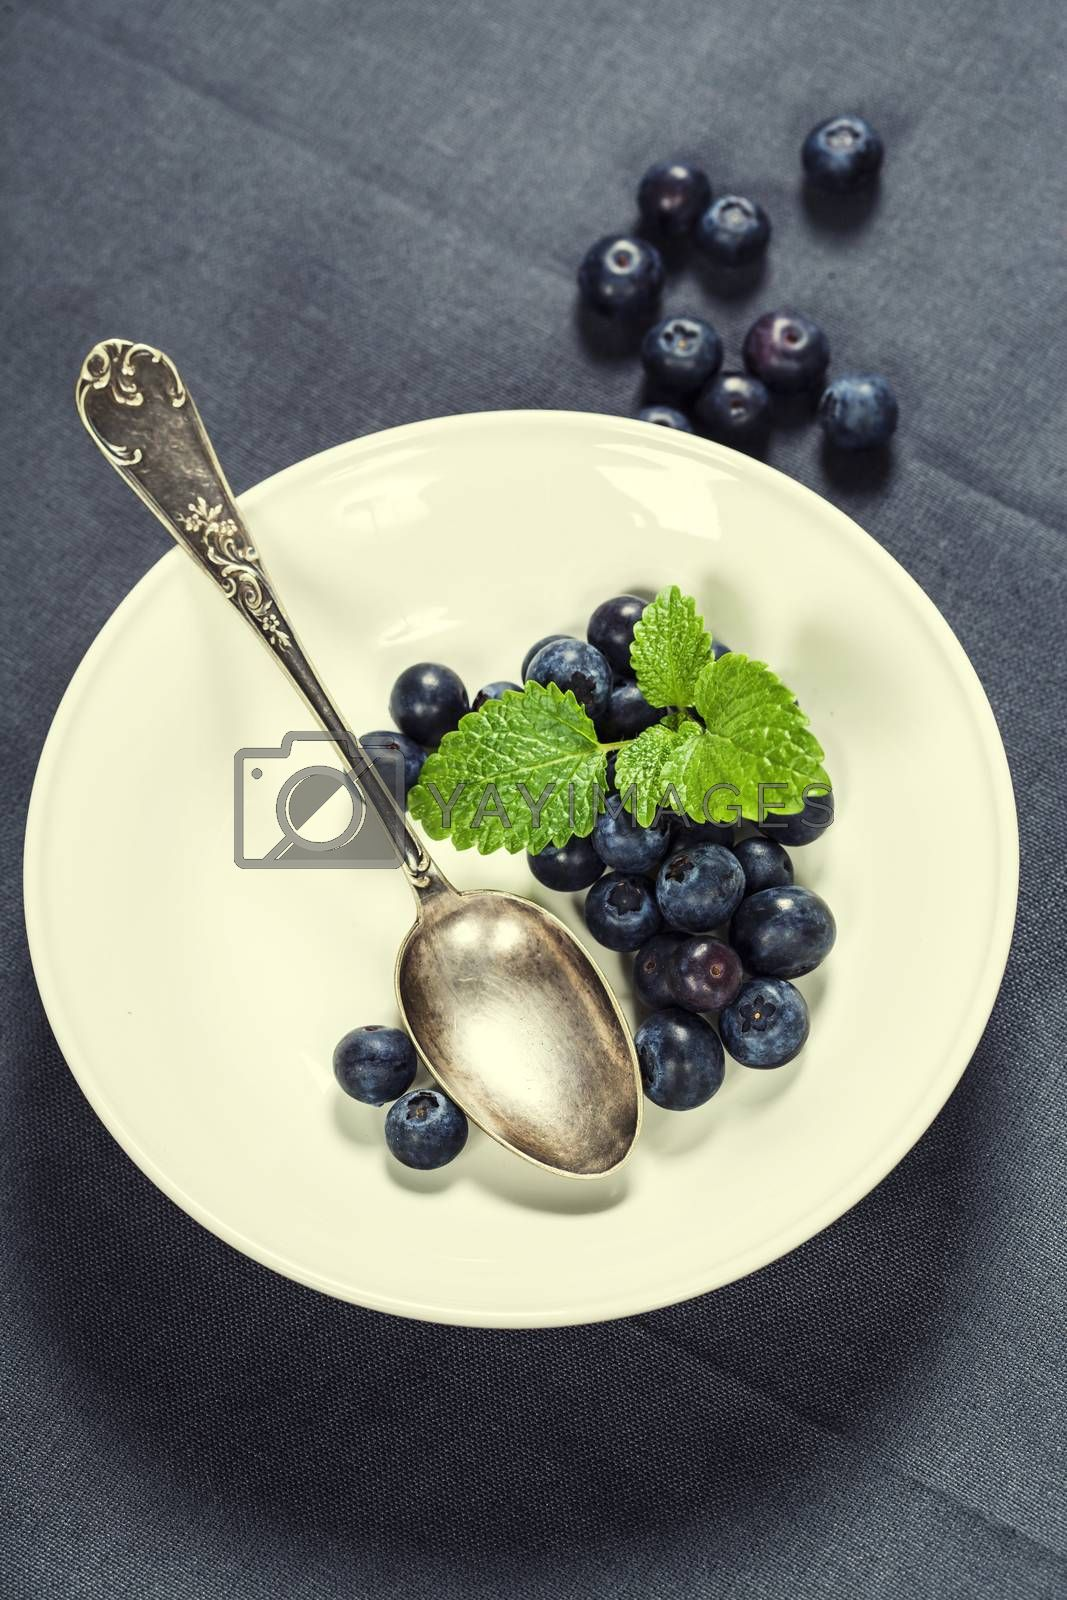 Royalty free image of Blueberries by klenova